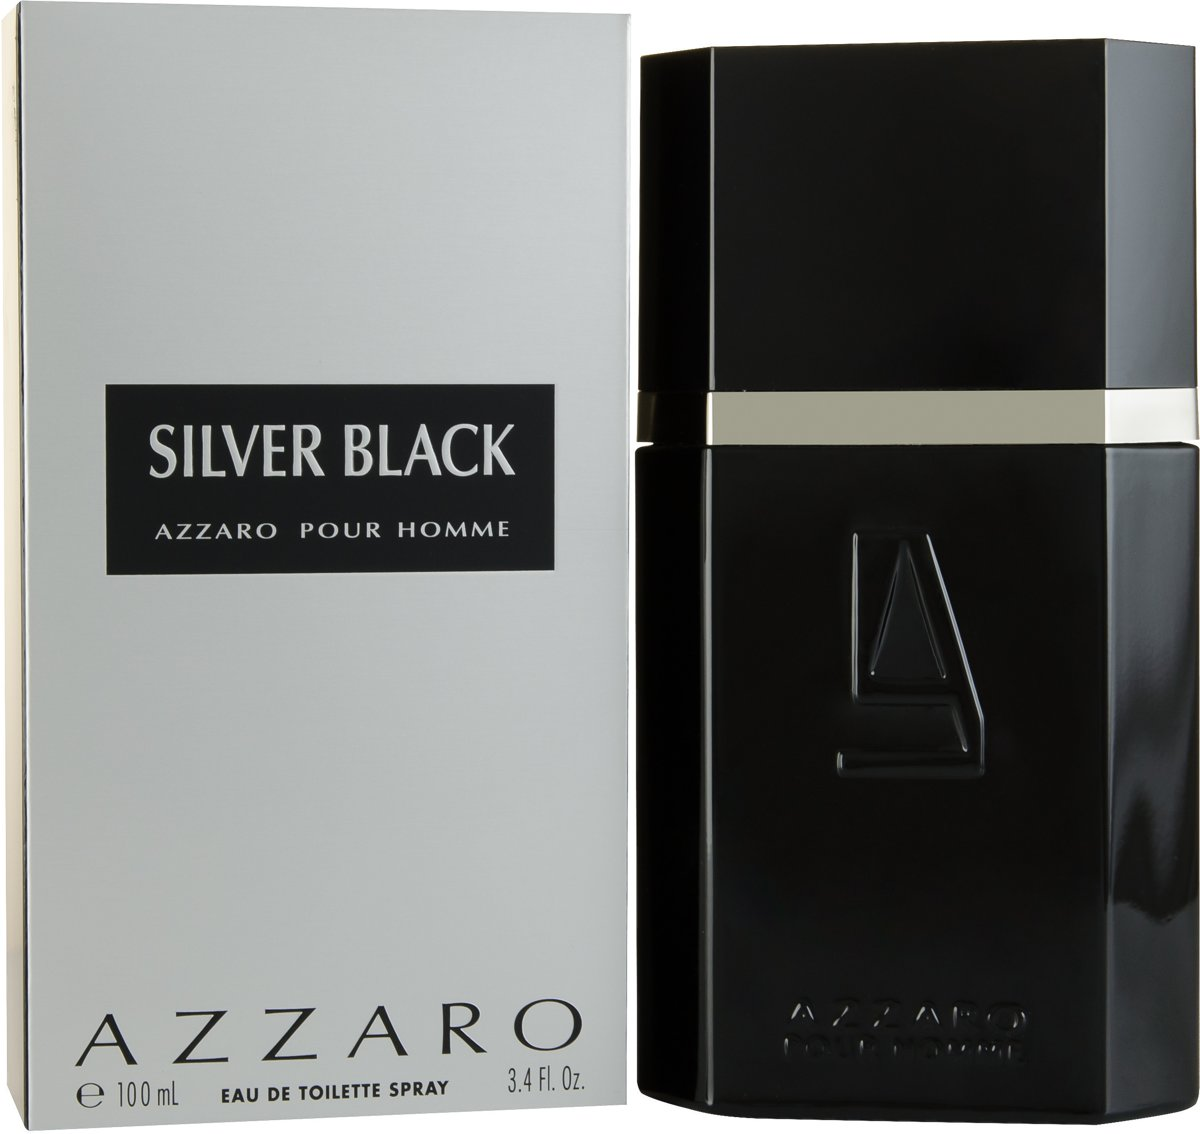 Azzaro Silver Black - 100 ml - Eau de toilette